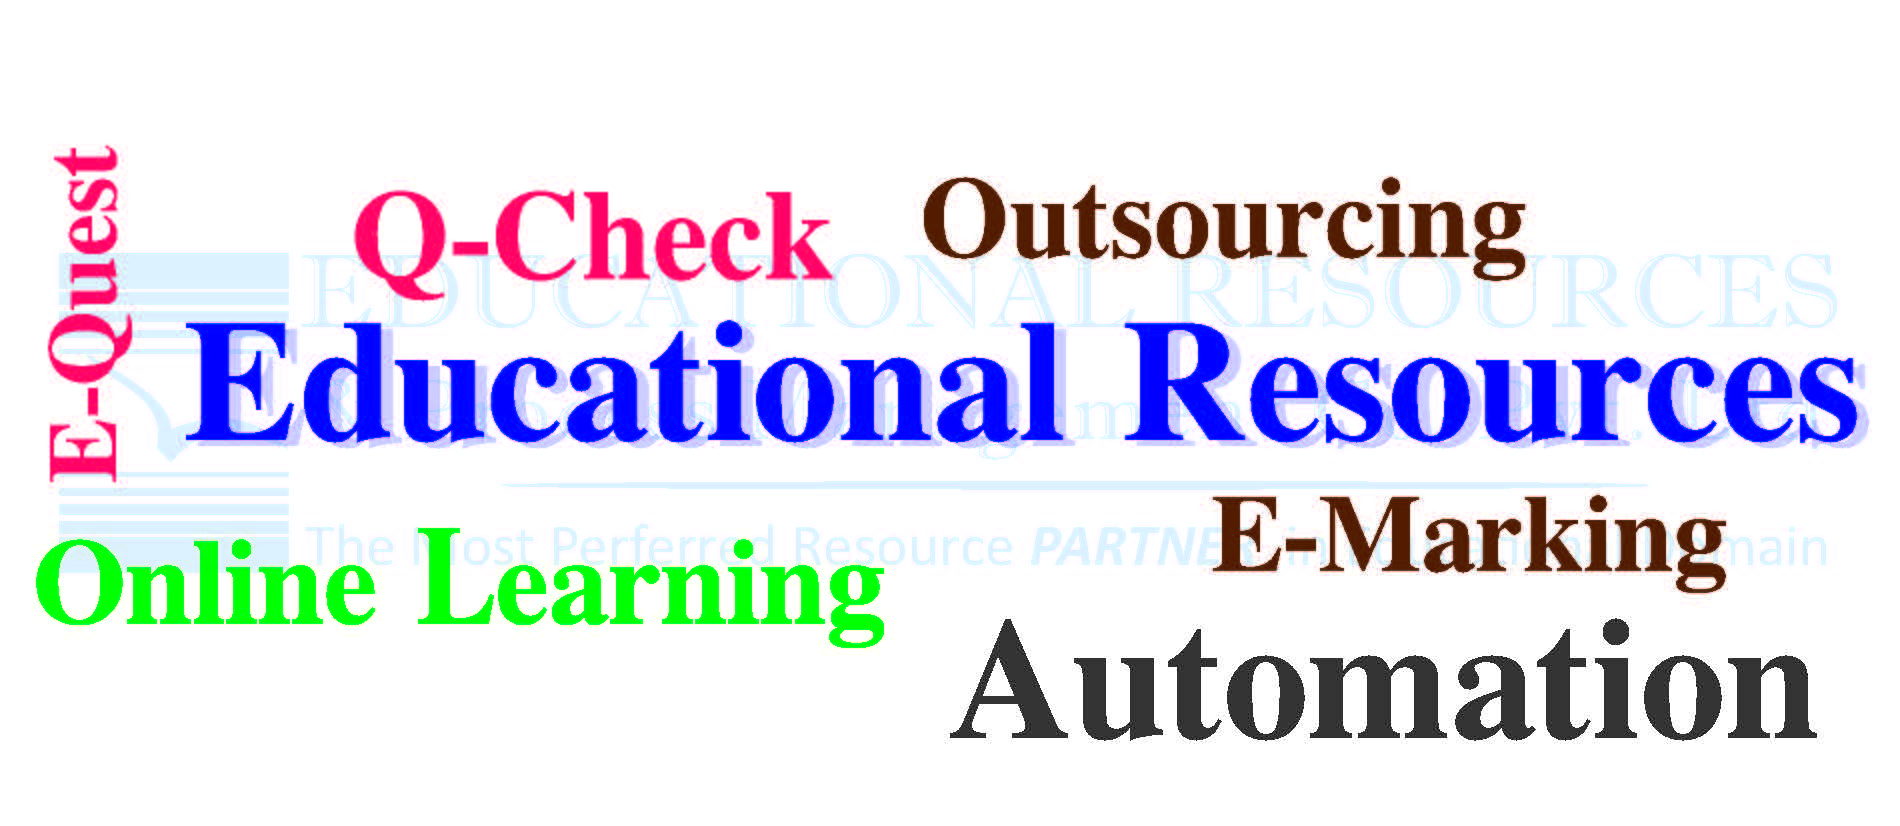 Edu Resources Logo